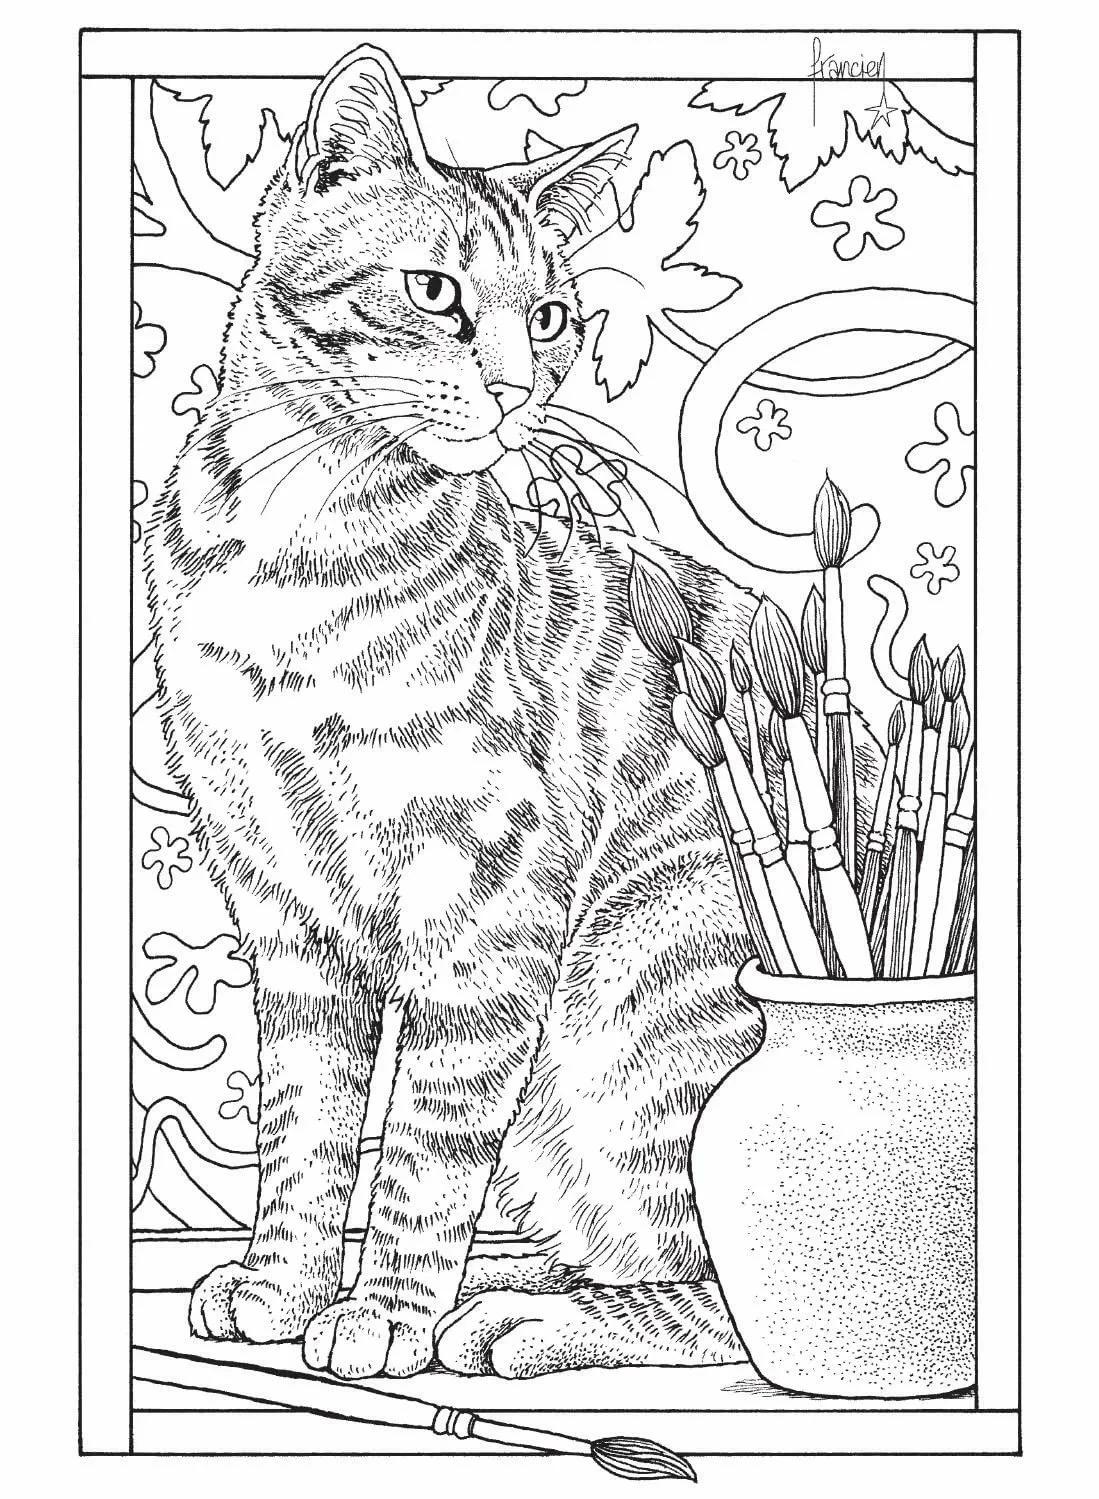 Cute Anime Cat Coloring Pages Colouring Pages Kitty Cat Coloring Pages Cute Print Free Kitty Coloring Hello Kitty Colouring Pages Cat Coloring Page